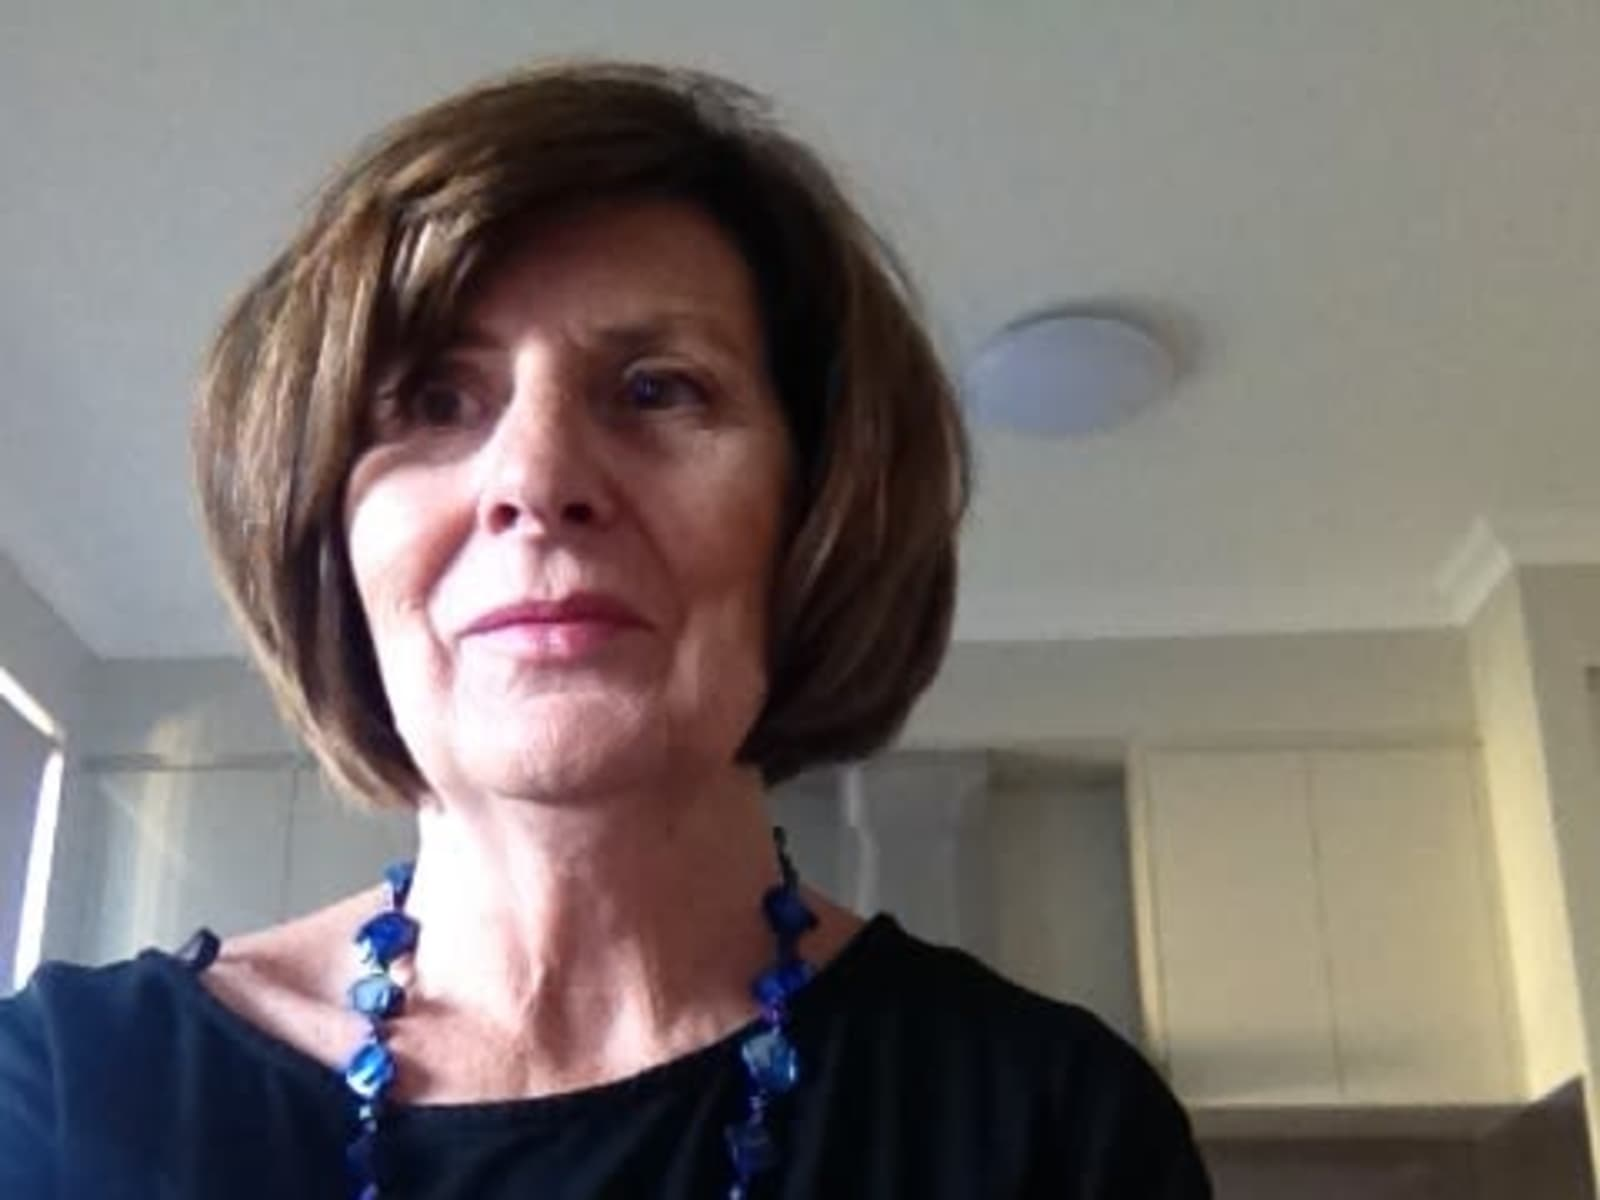 Jill from Tweed Heads West, New South Wales, Australia